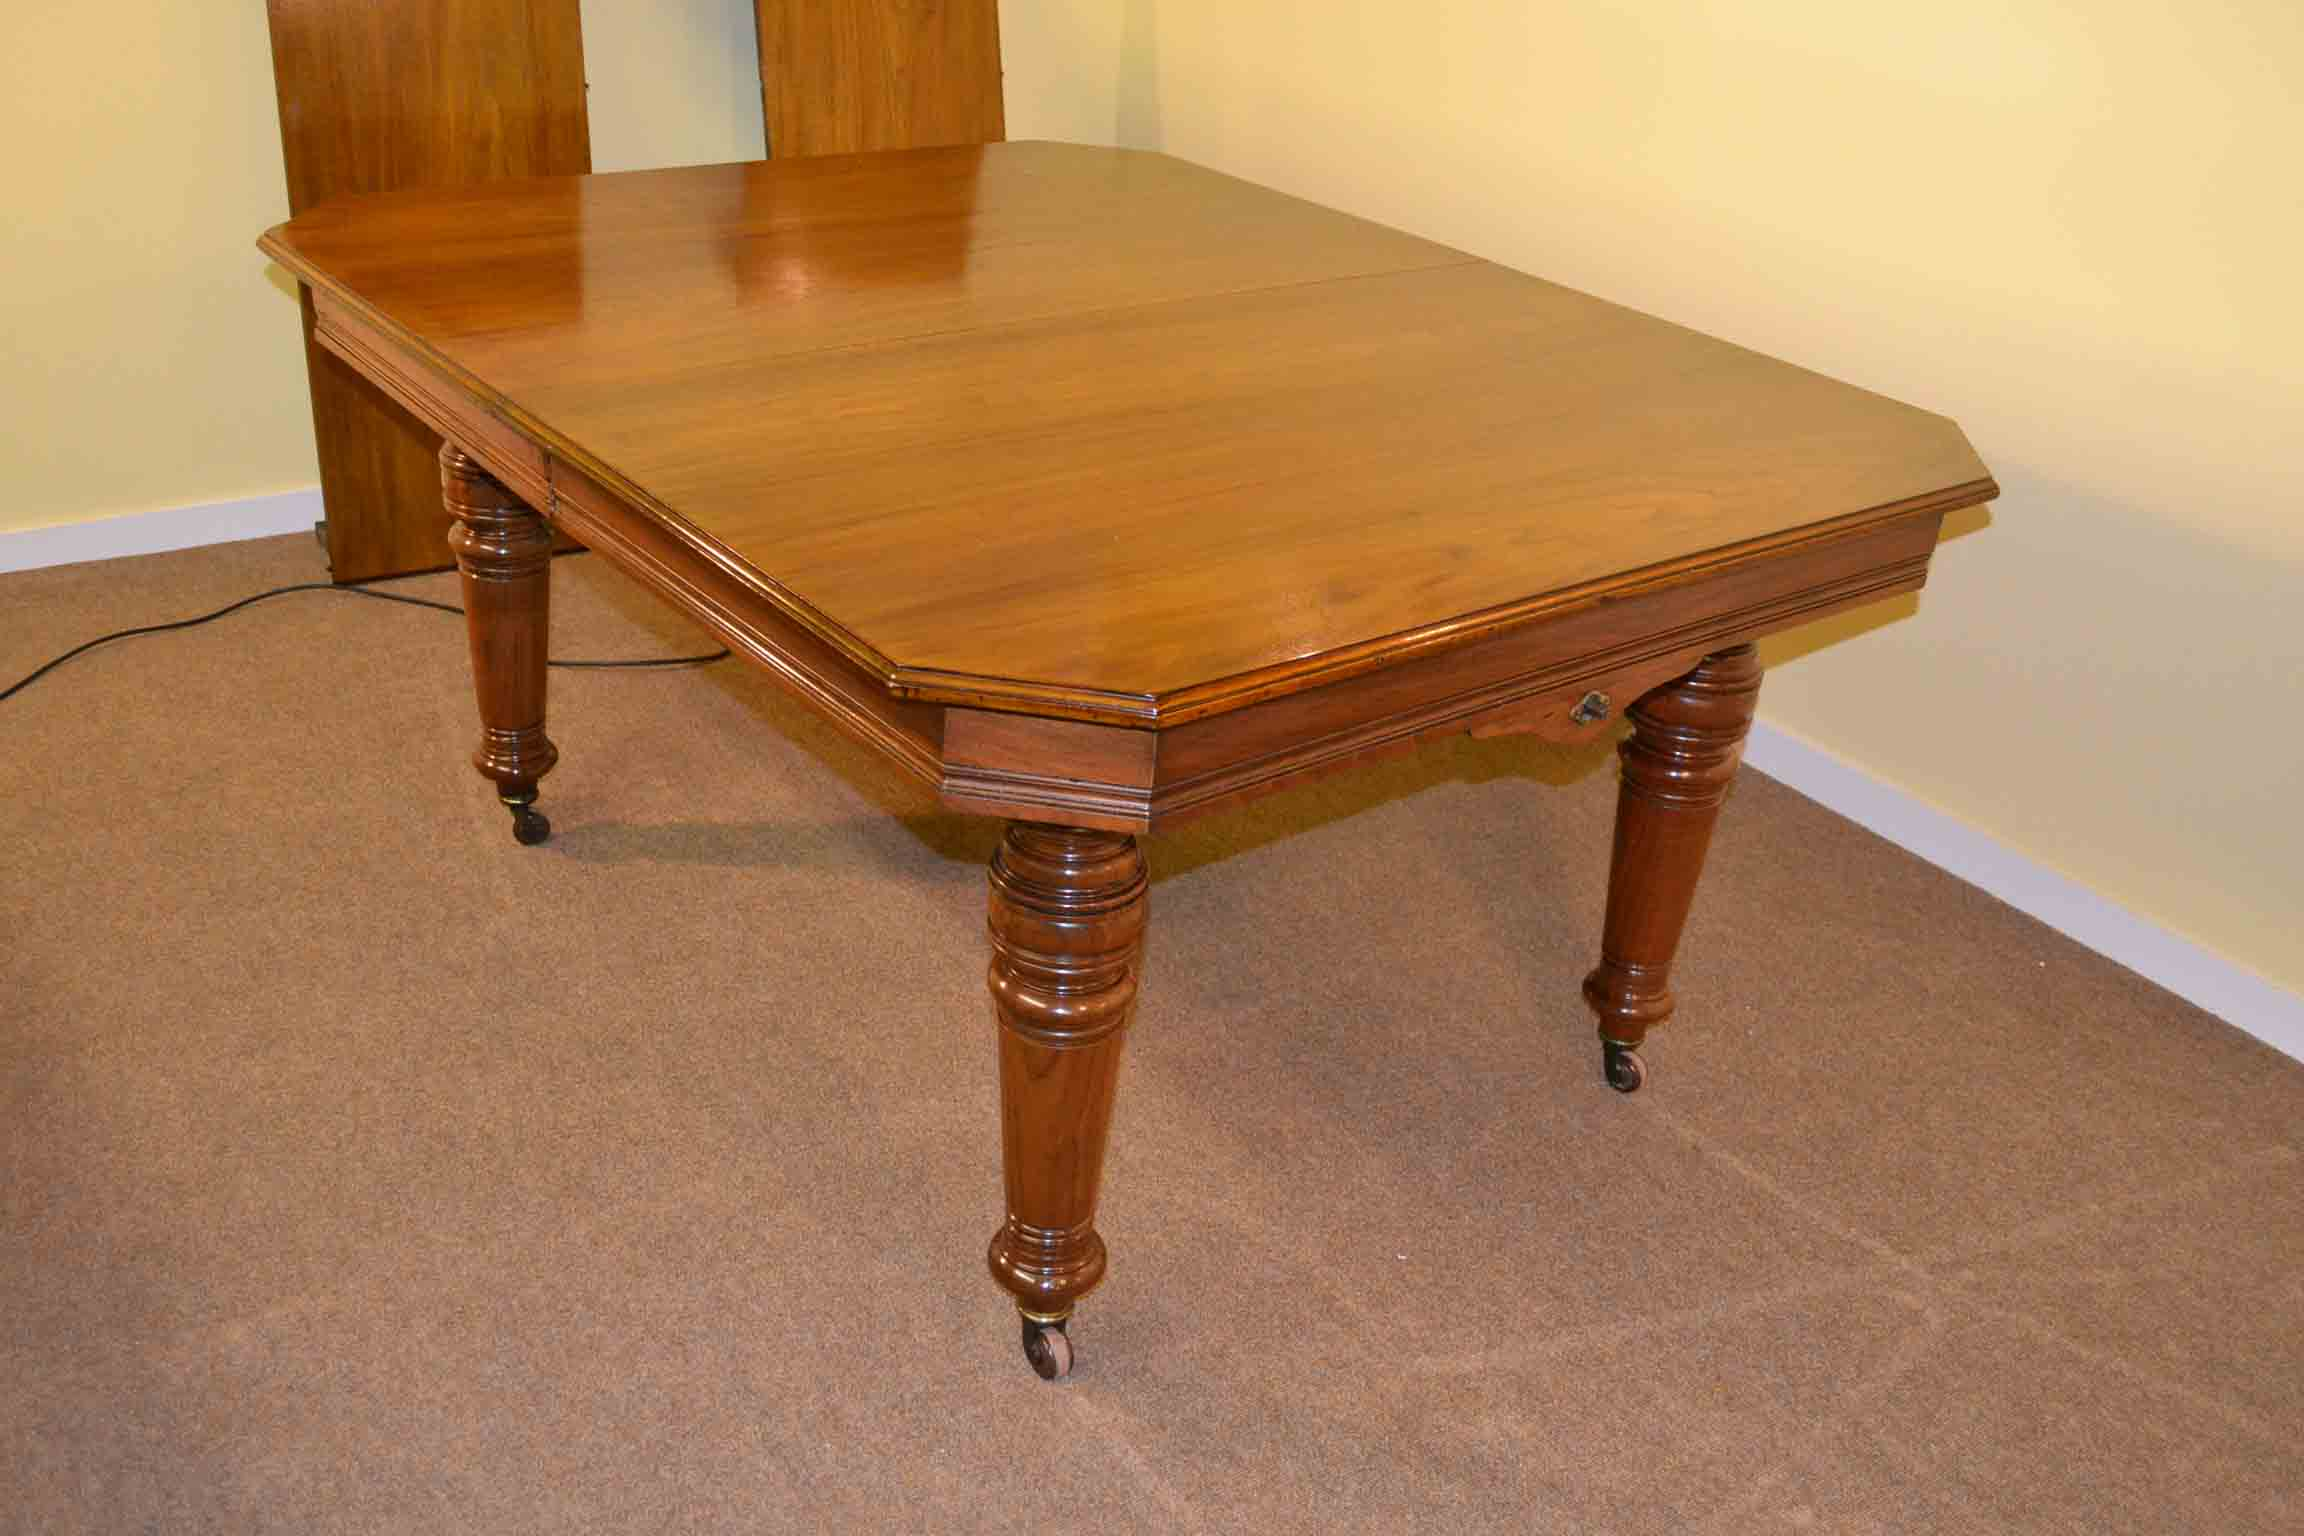 Regent antiques dining tables and chairs table and chair sets antique victorian walnut - Antiques dining tables ...